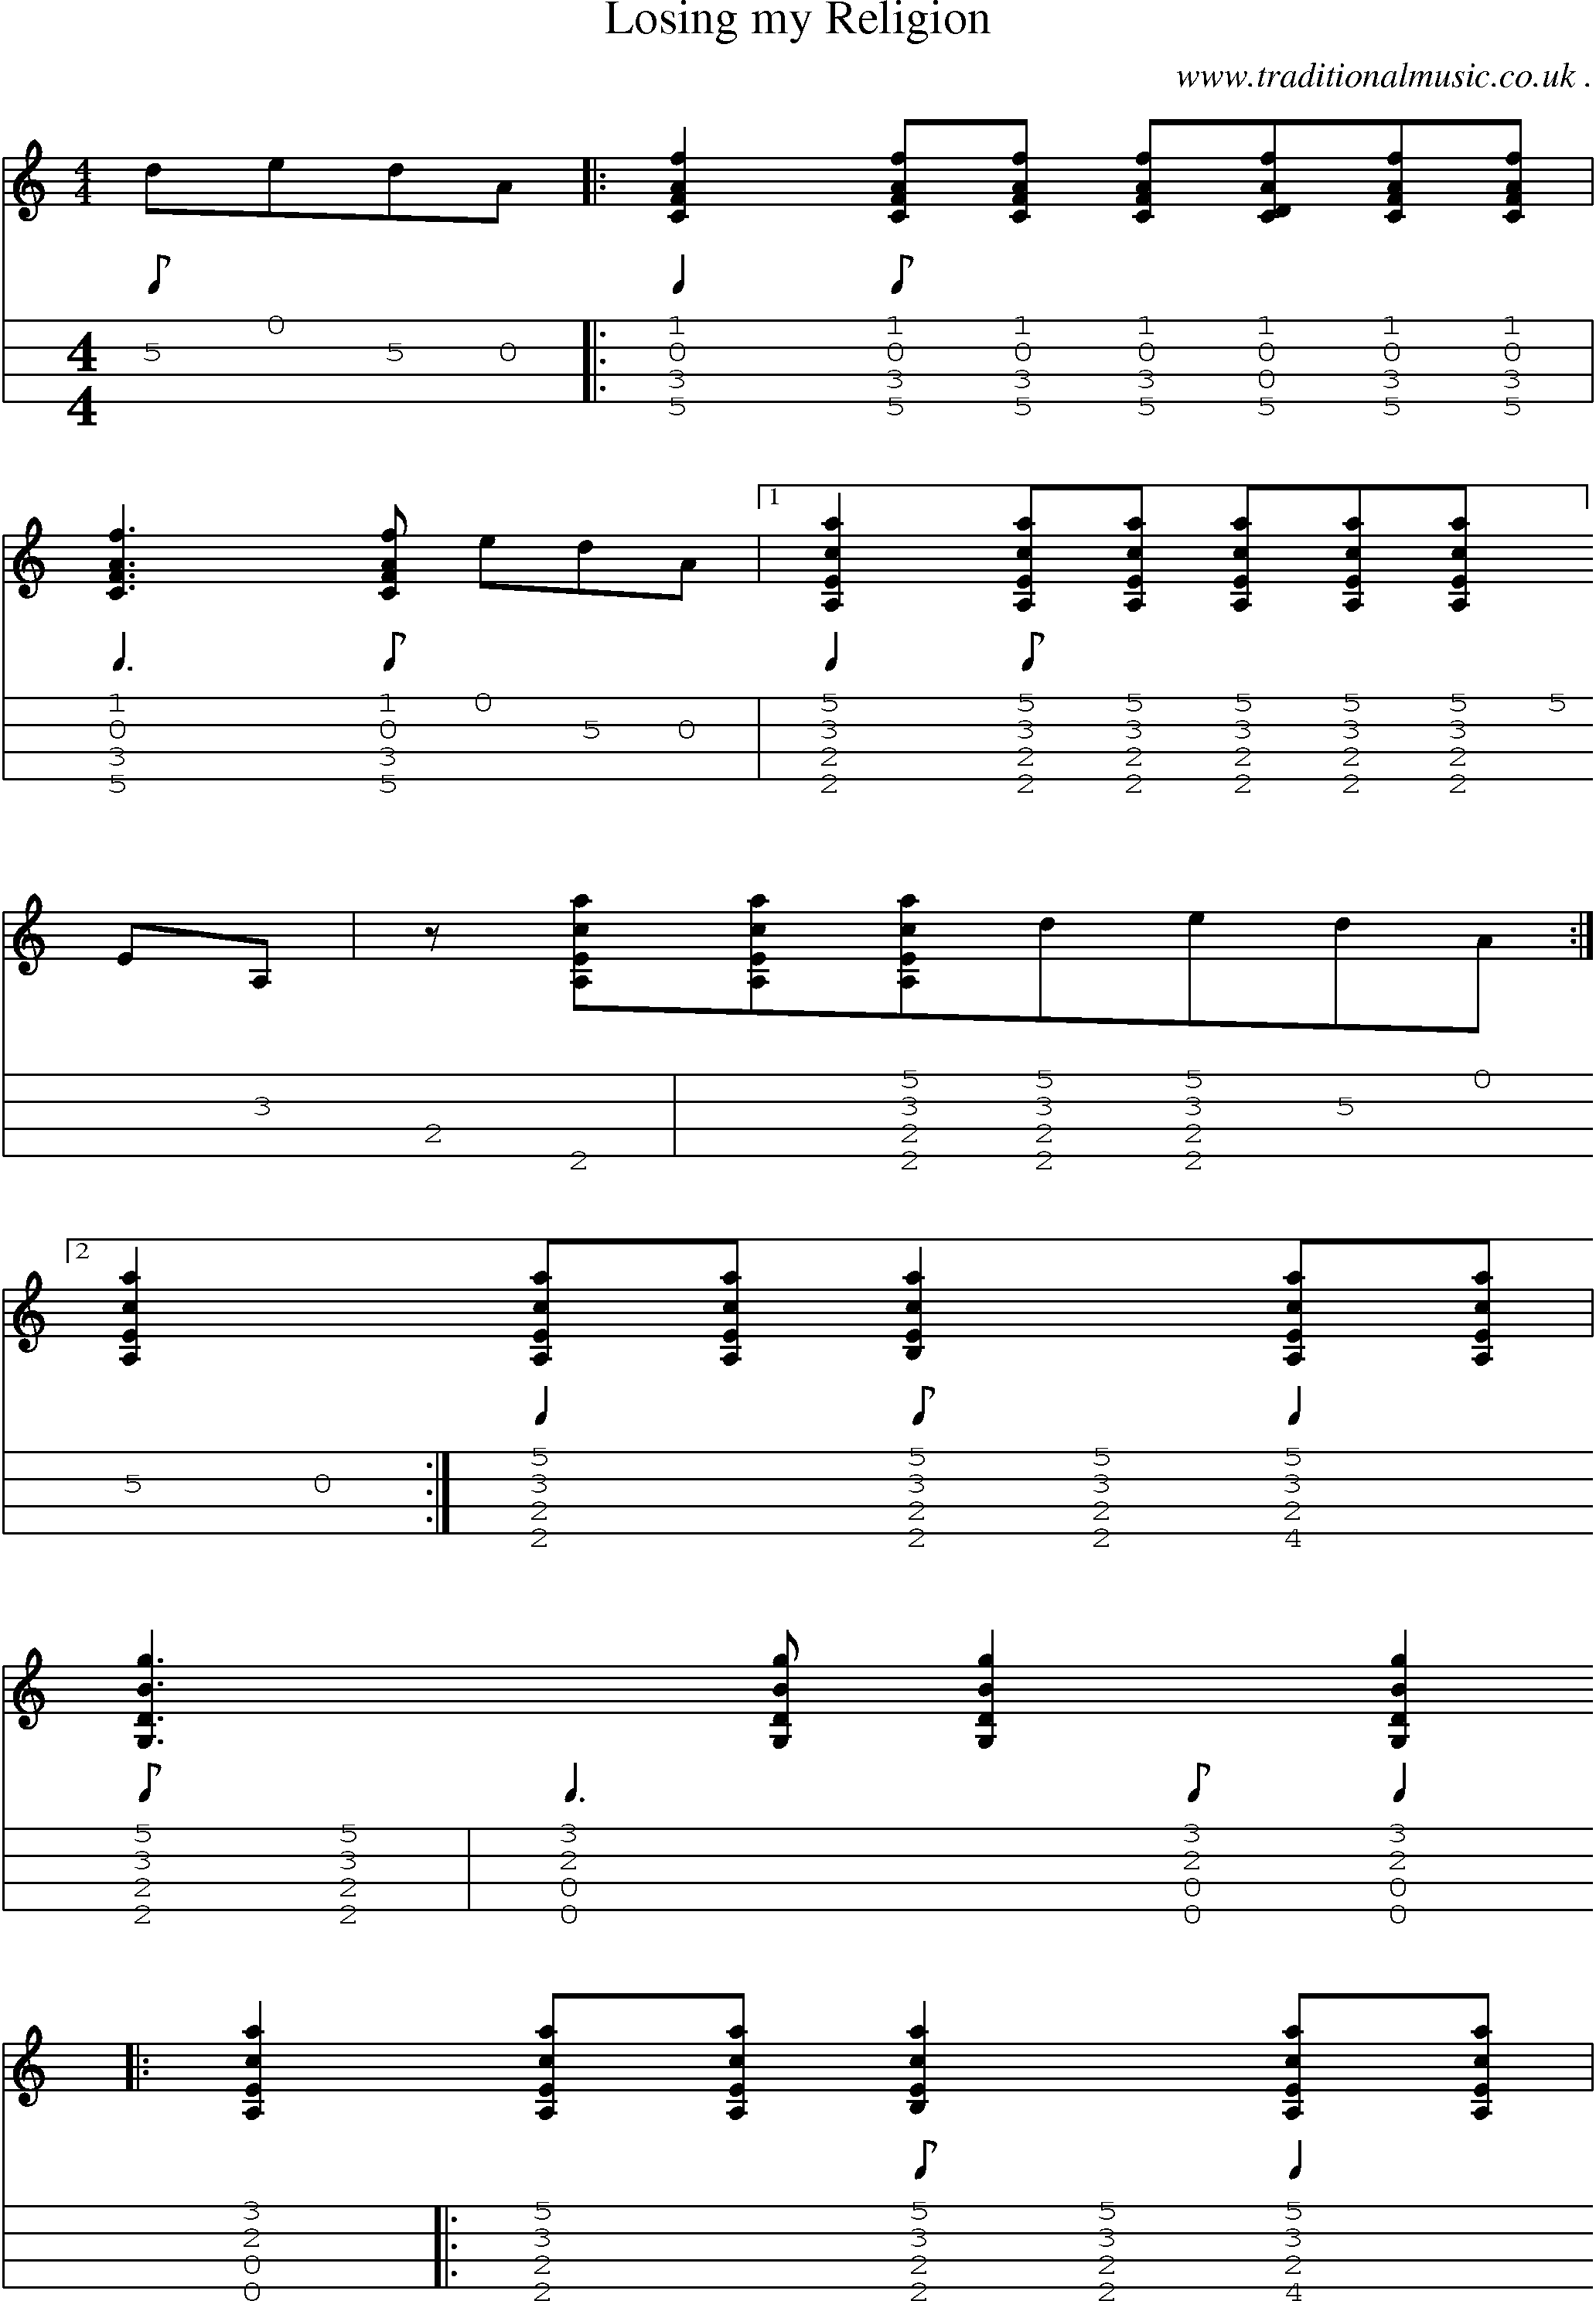 Music score and guitar tabs for losing my religion sheet music music score and guitar tabs for losing my religion hexwebz Choice Image